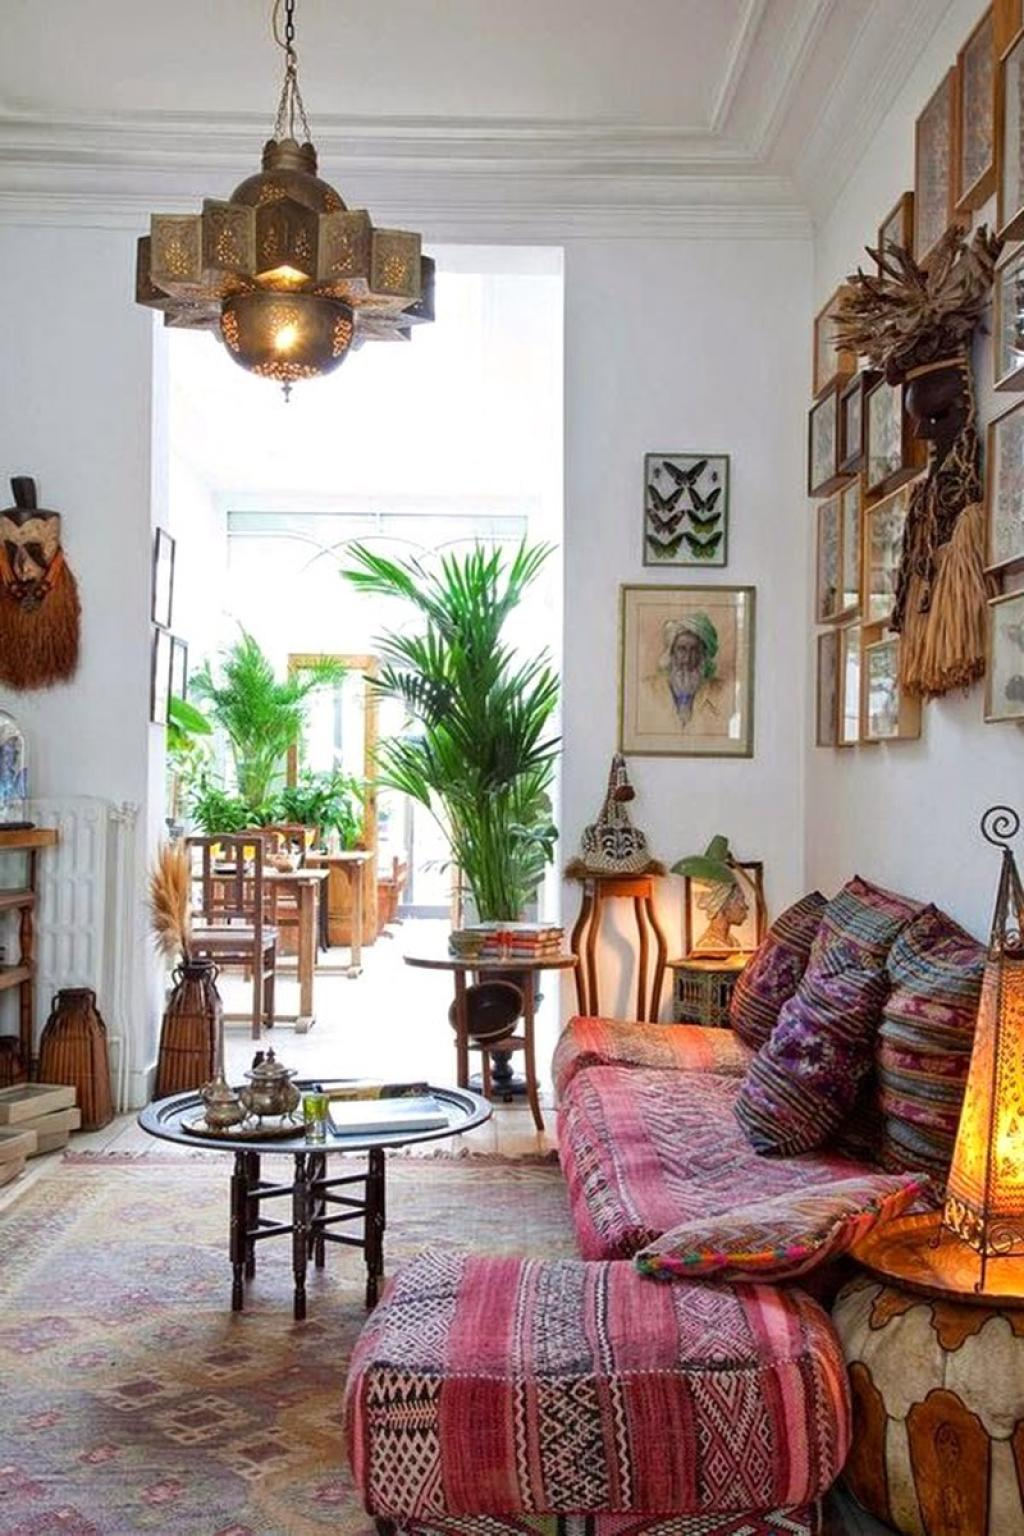 31 best bohemian interior design ideas - Interior living room design ideas ...